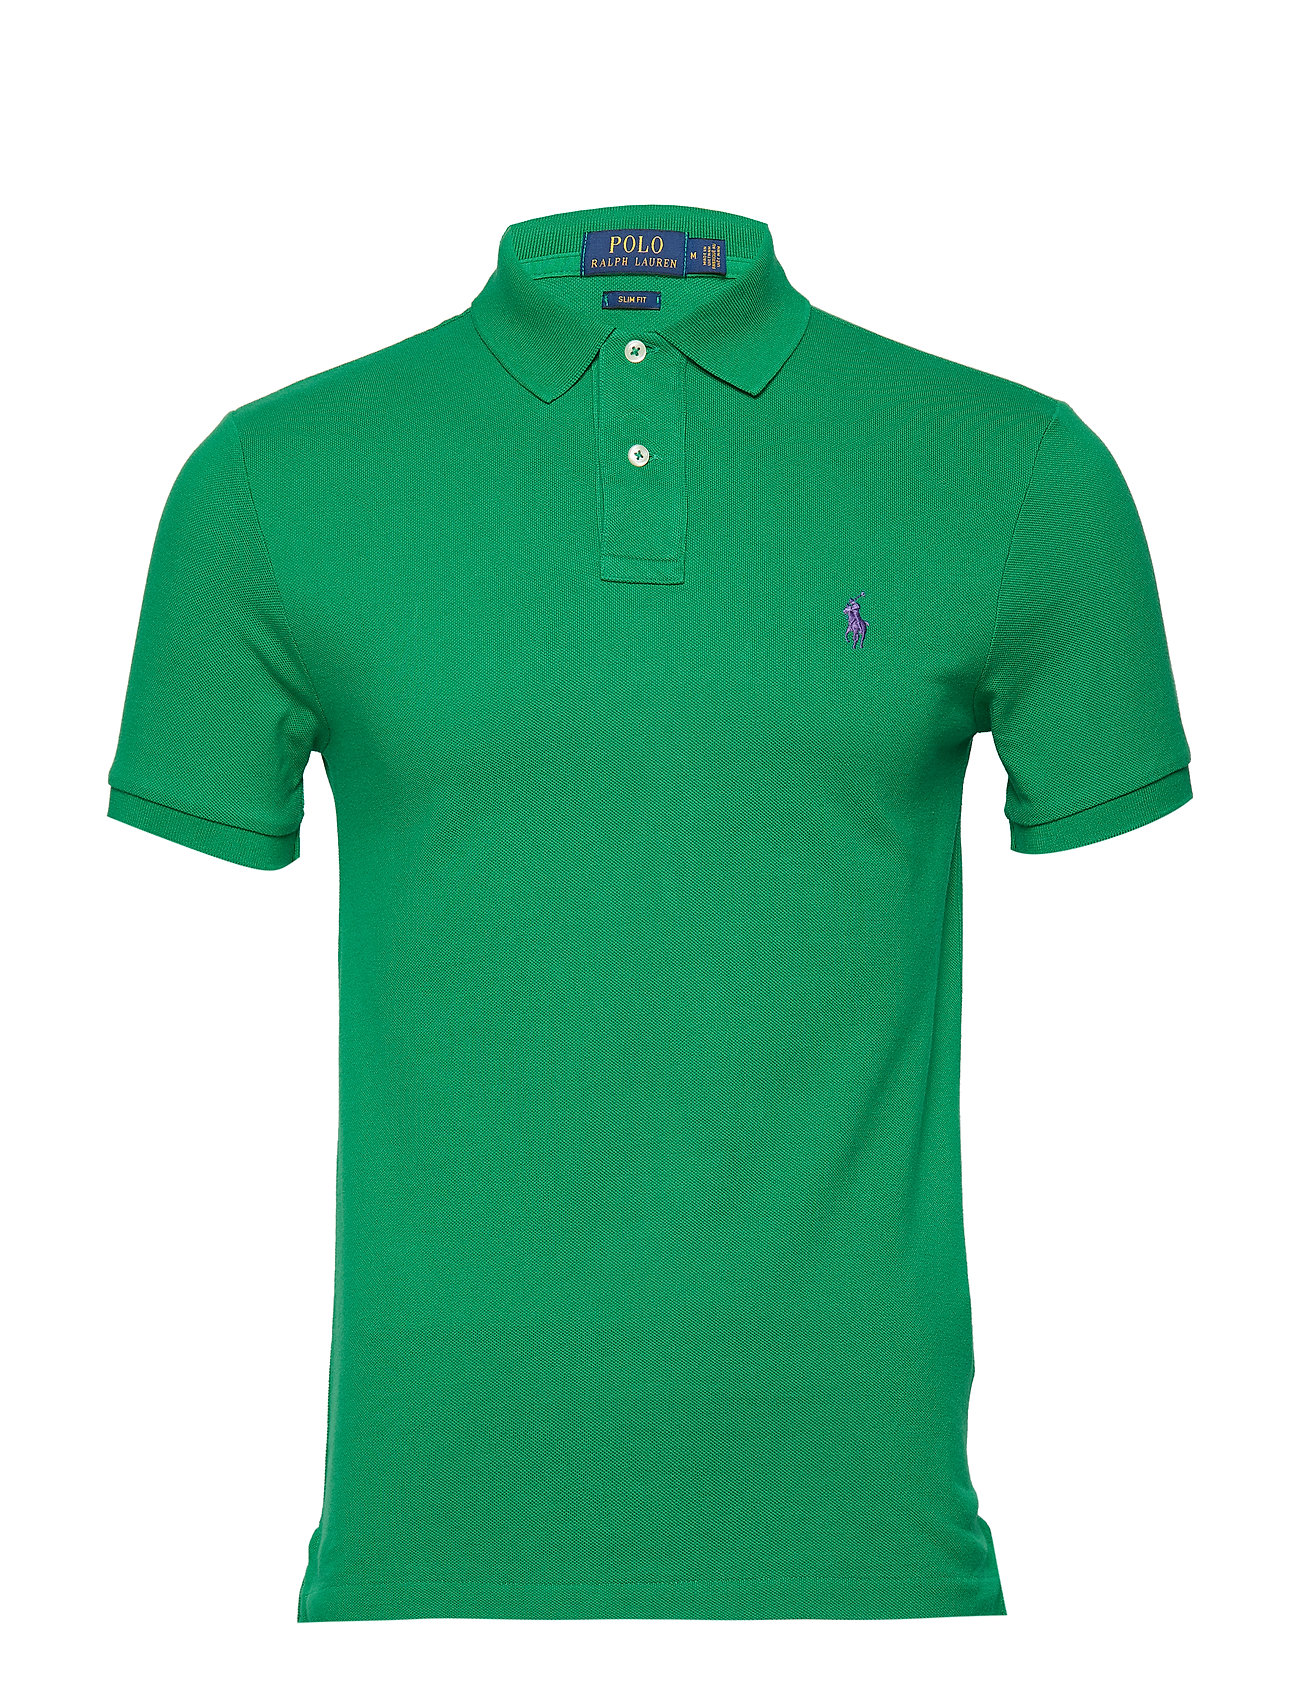 Polo Ralph Lauren Slim Fit Mesh Polo Shirt - BILLIARD